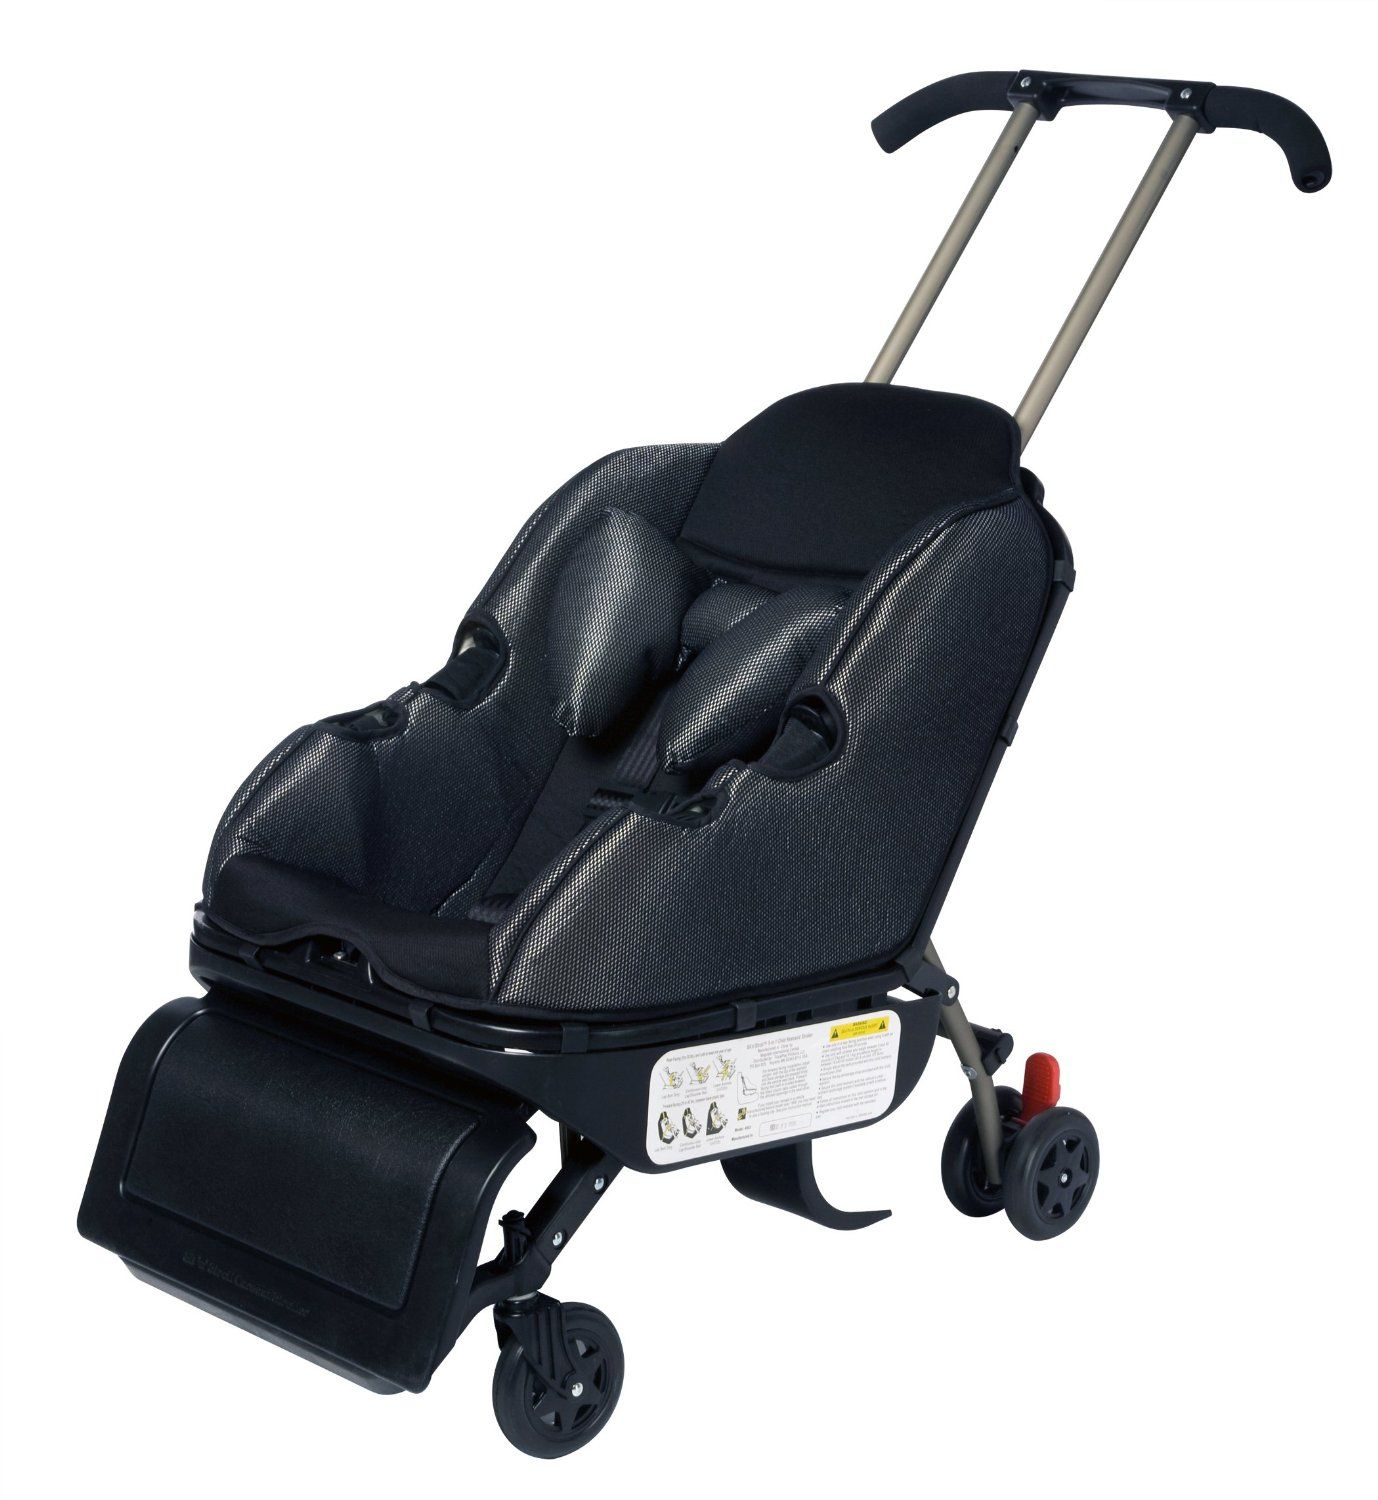 Lilly Gold Sit 'n' Stroll 5 in 1 Car Seat and